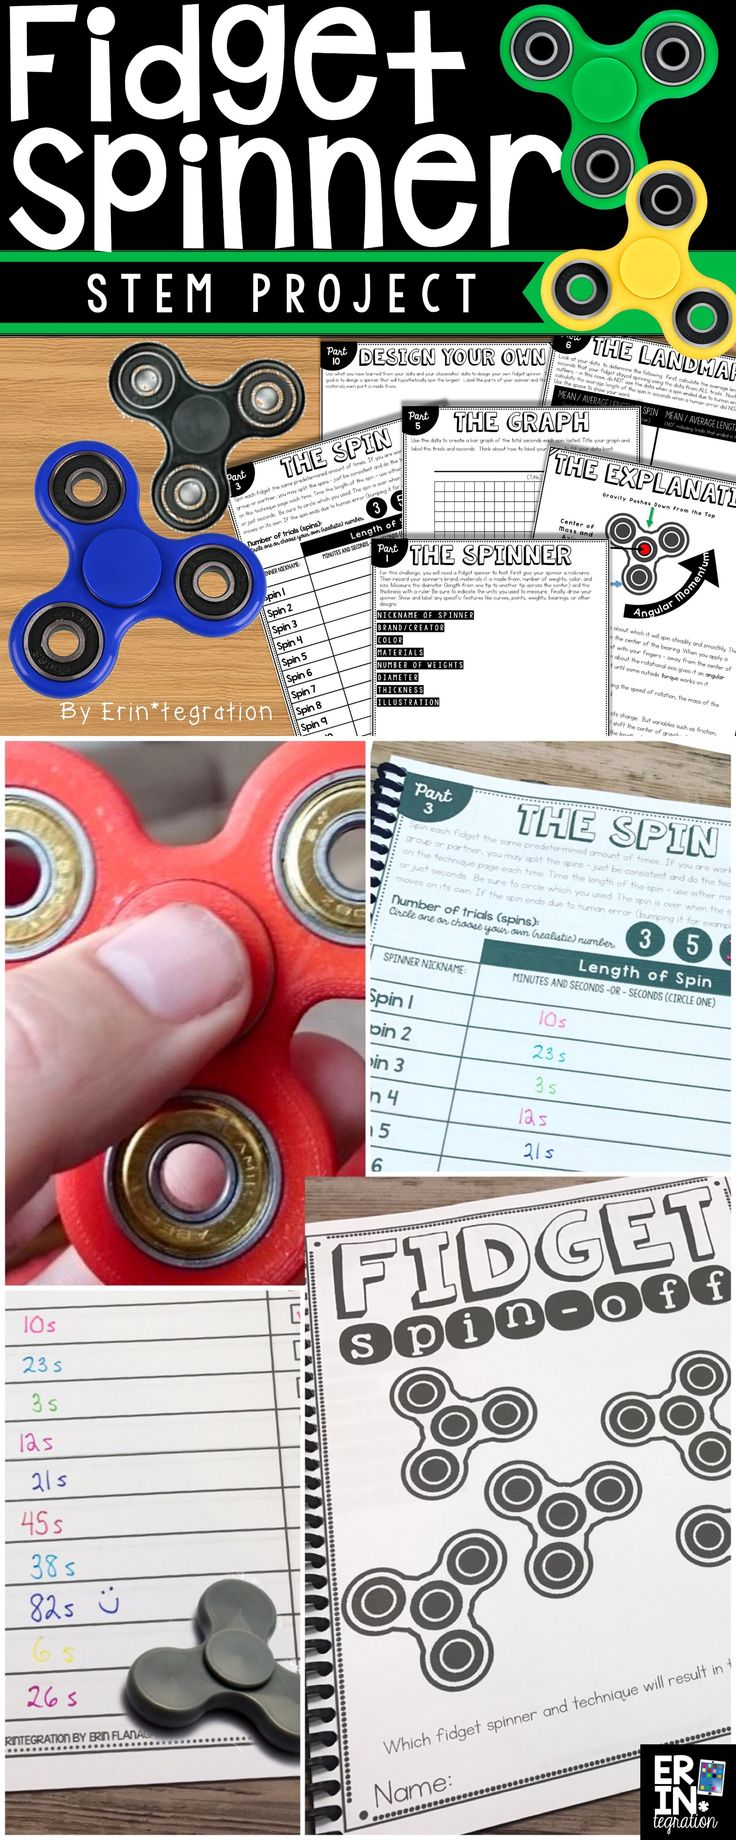 Which fidget spinners spin the longest? Use this complete STEM Challenge to investigate fidget spinners in the classroom.